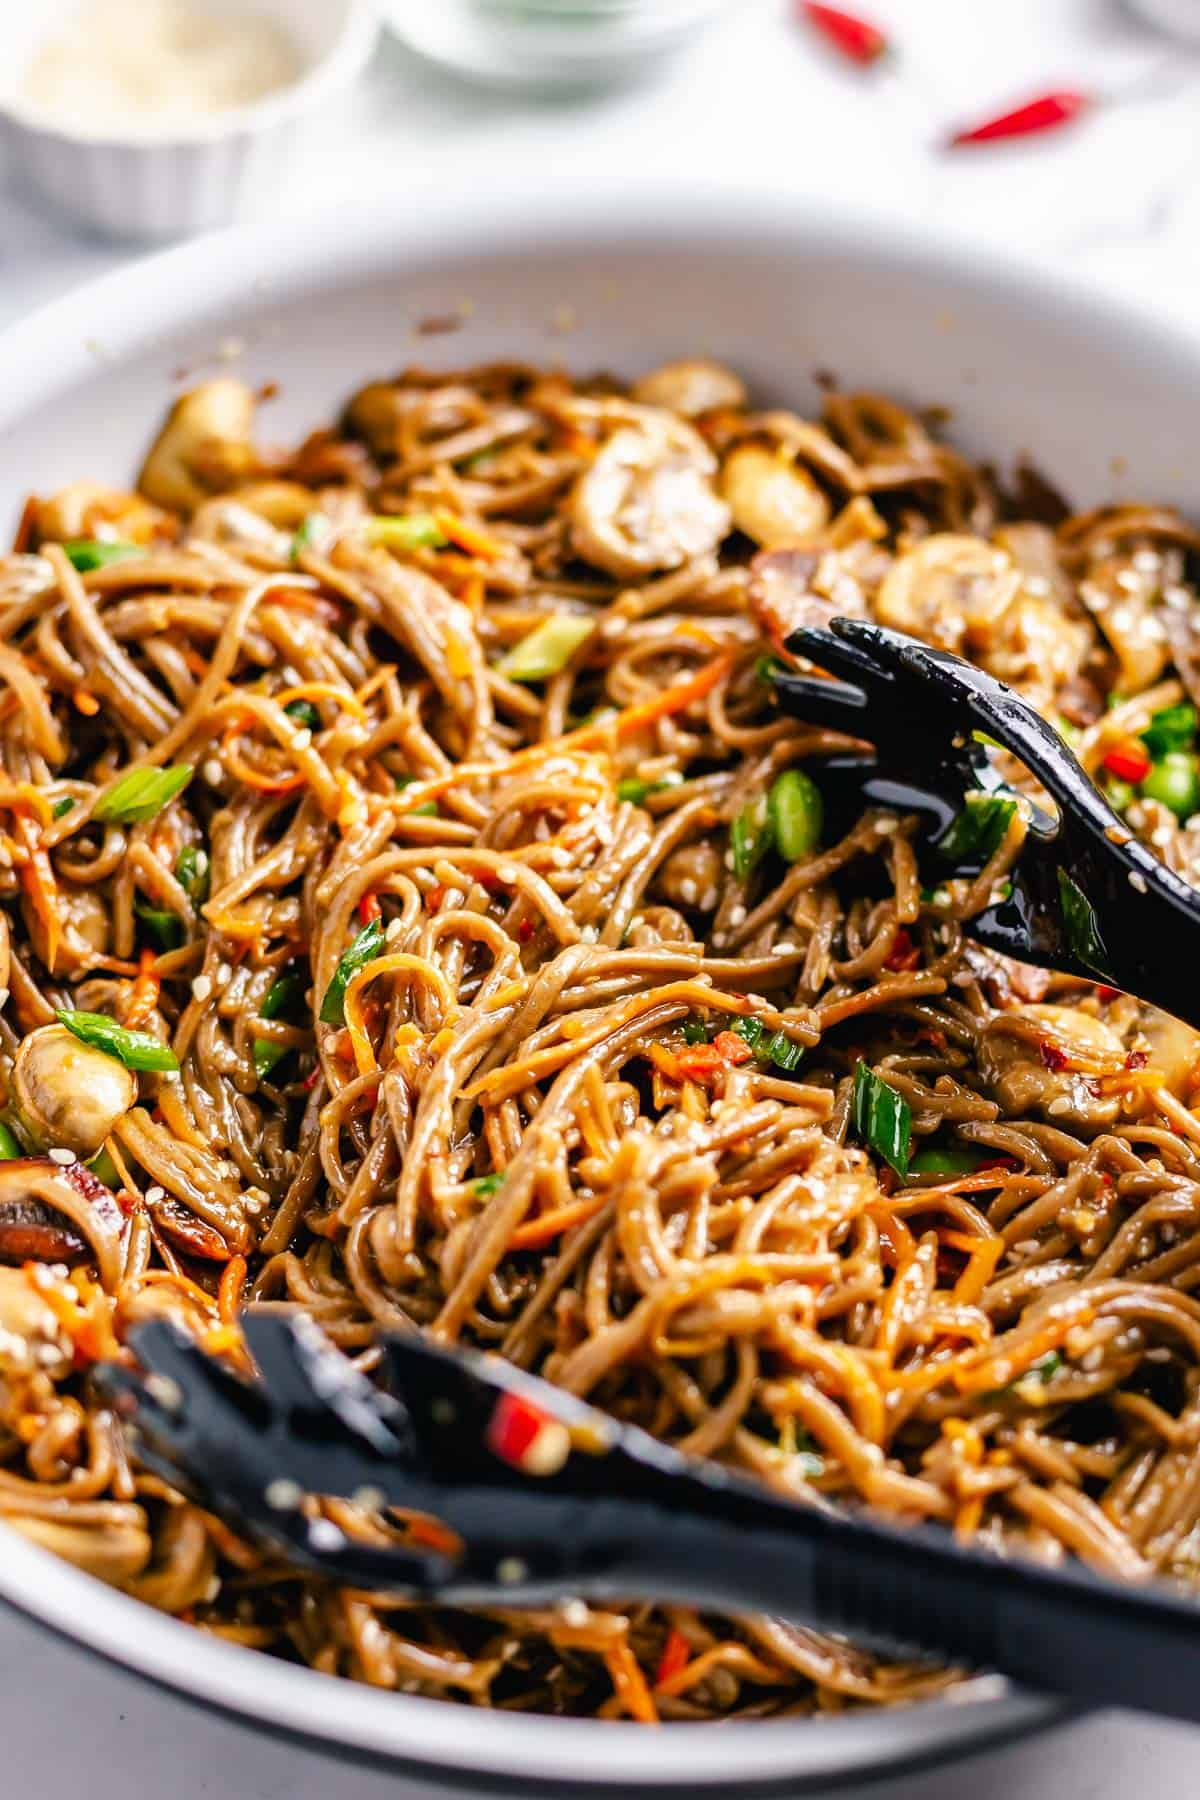 Stir Fry Soba Noodles with black kitchen tongs in a white skillet